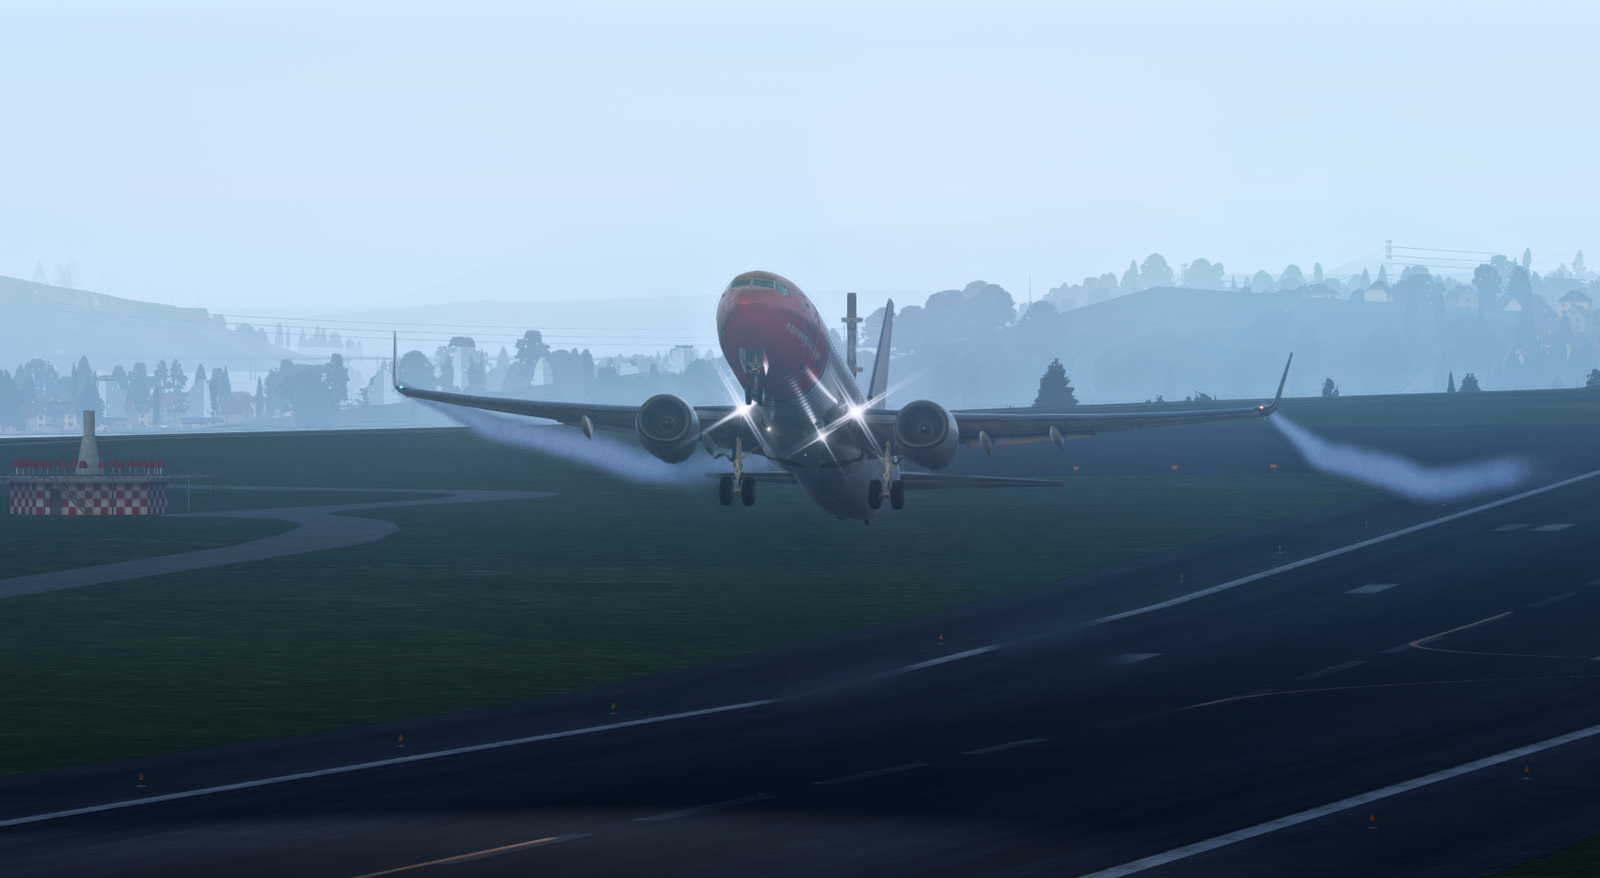 X-Plane Screenshot 2018 11 12 - 11 55 01 61 png - Airliners